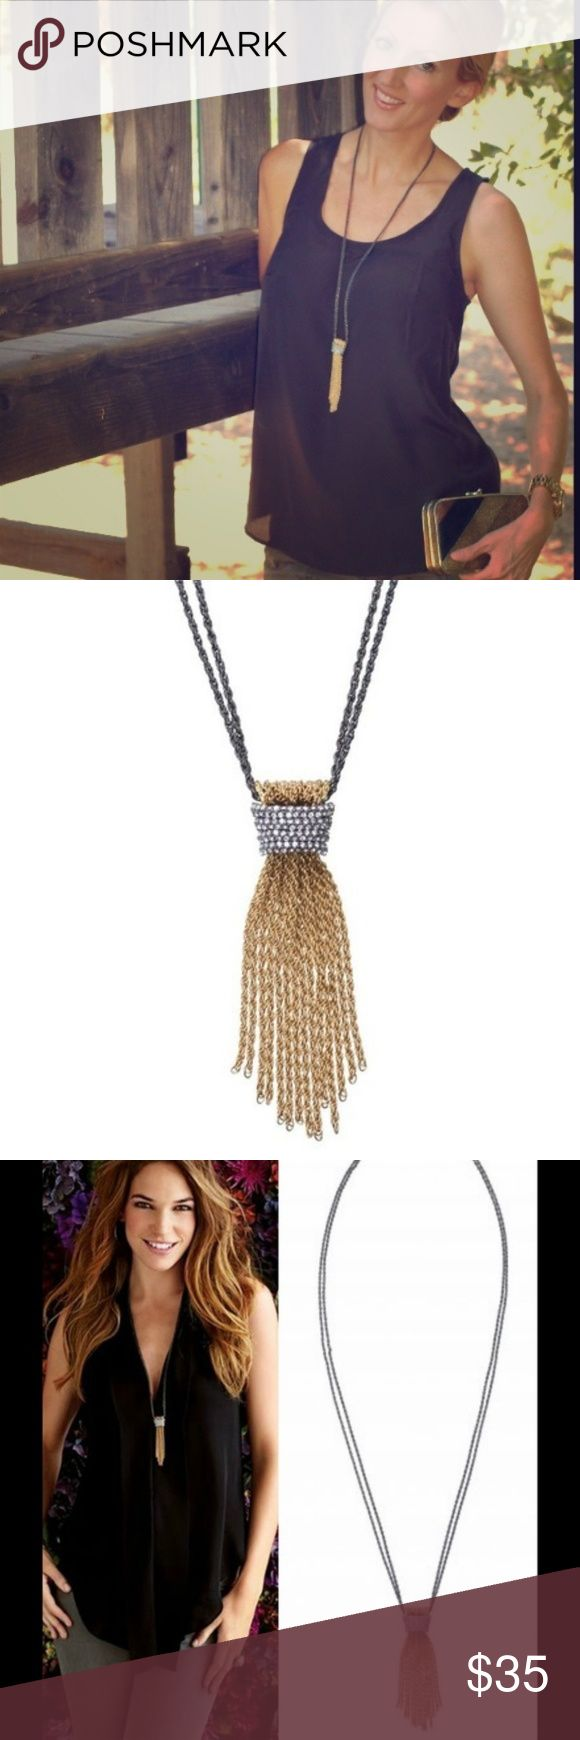 """Stella and Dot Necklace """"Windsor Tassel"""" No flaws  IRL photos by request Jewelry Necklaces"""